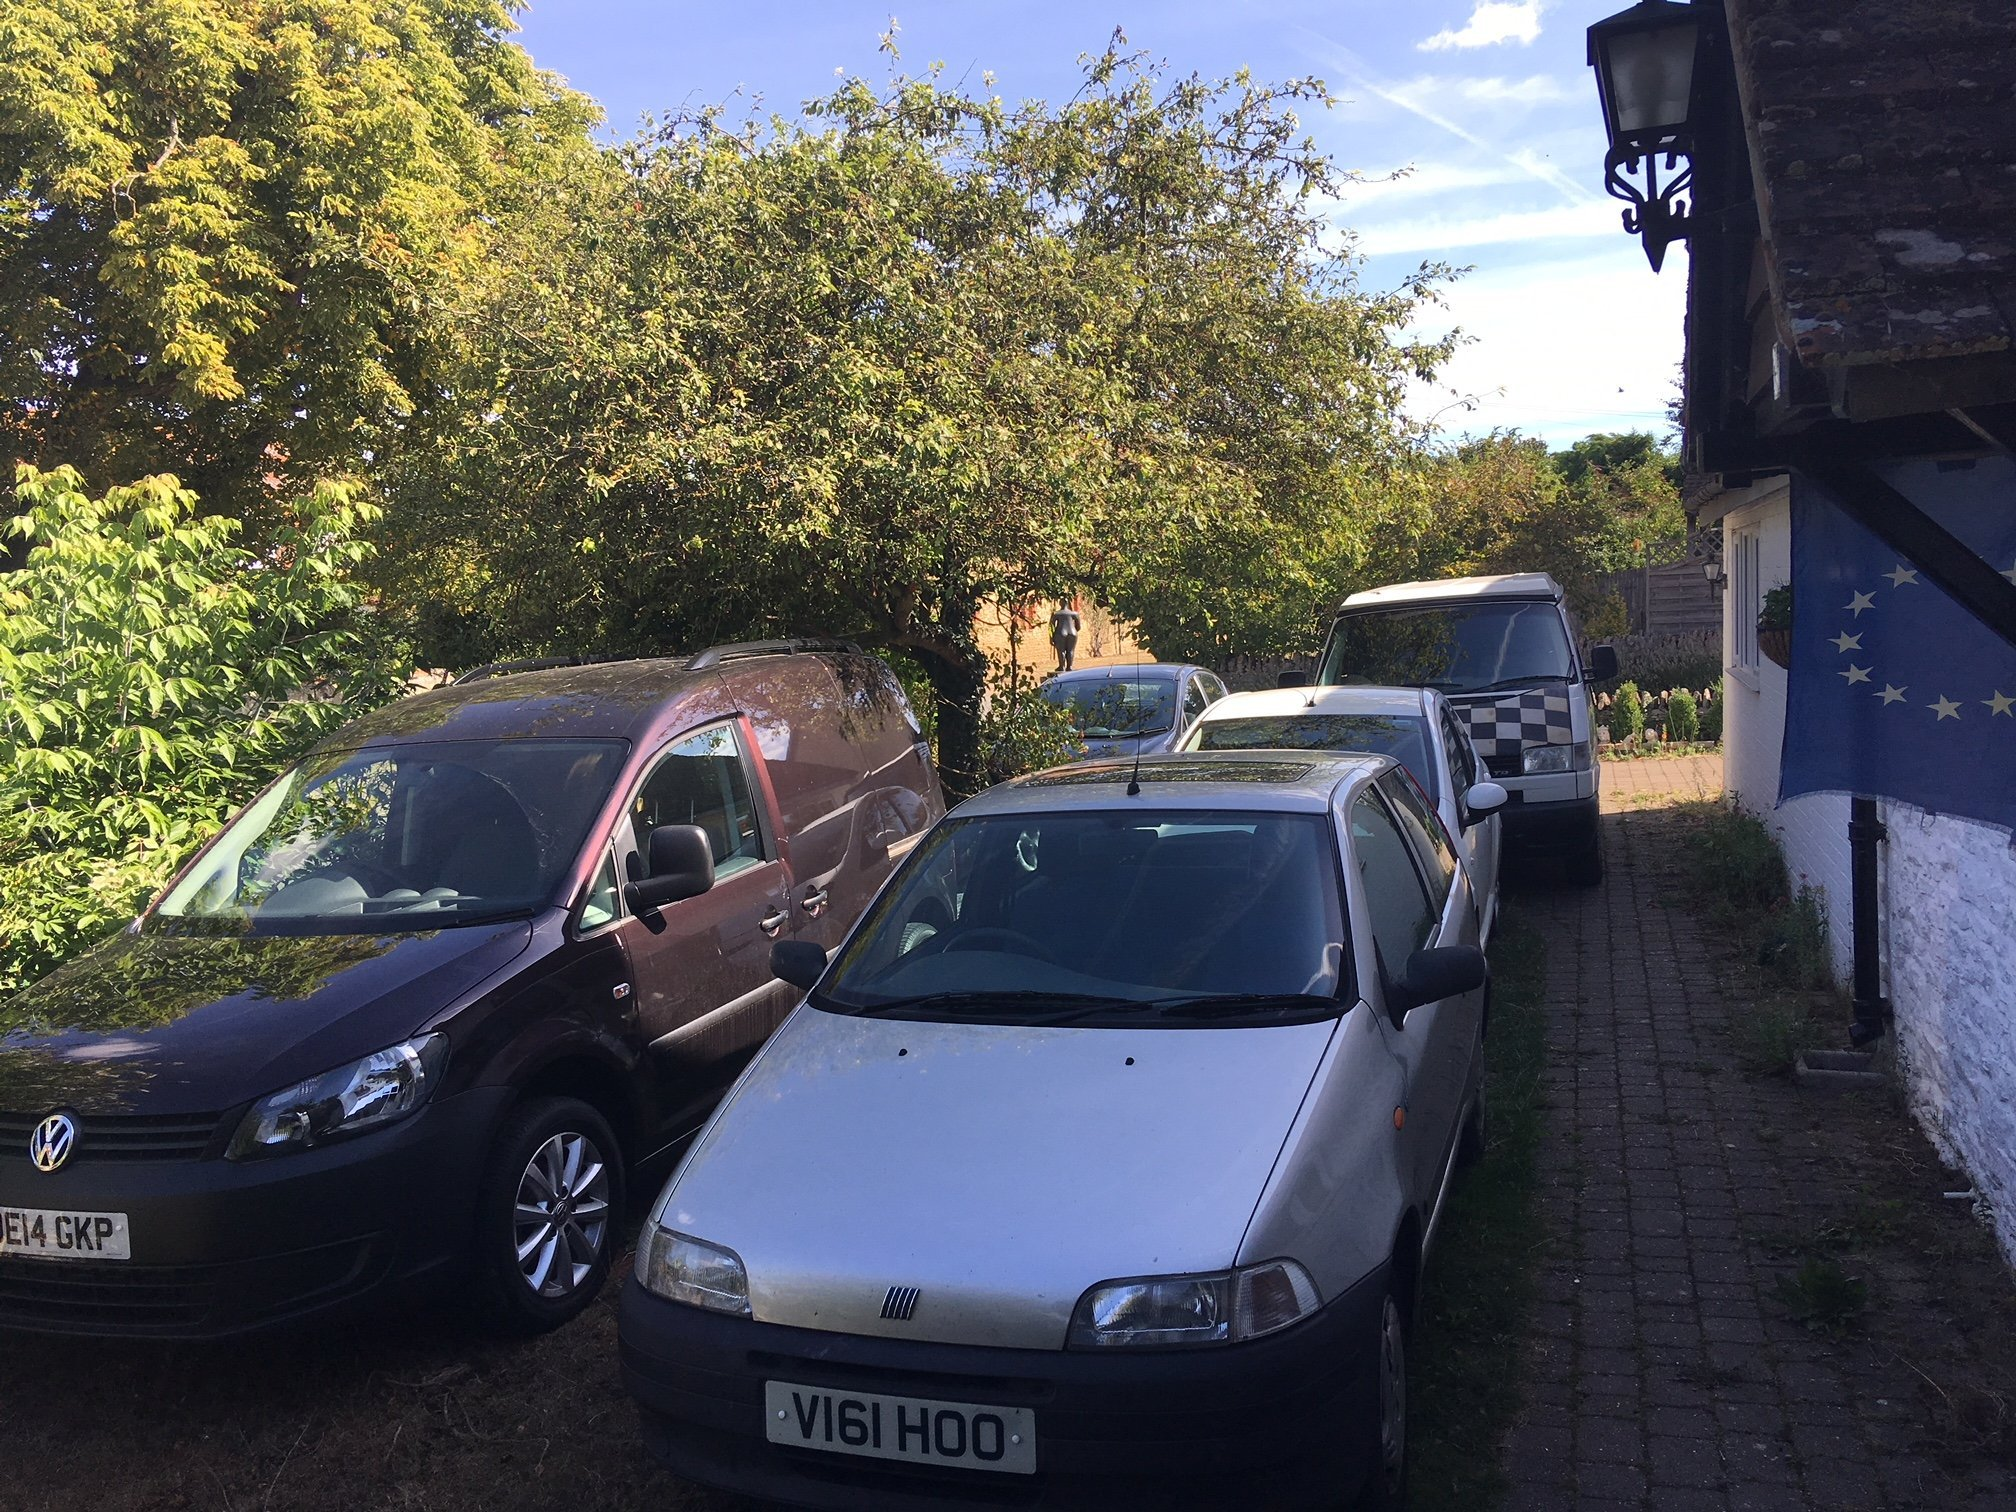 Fourth and fifth car parked ( one a van) side by side